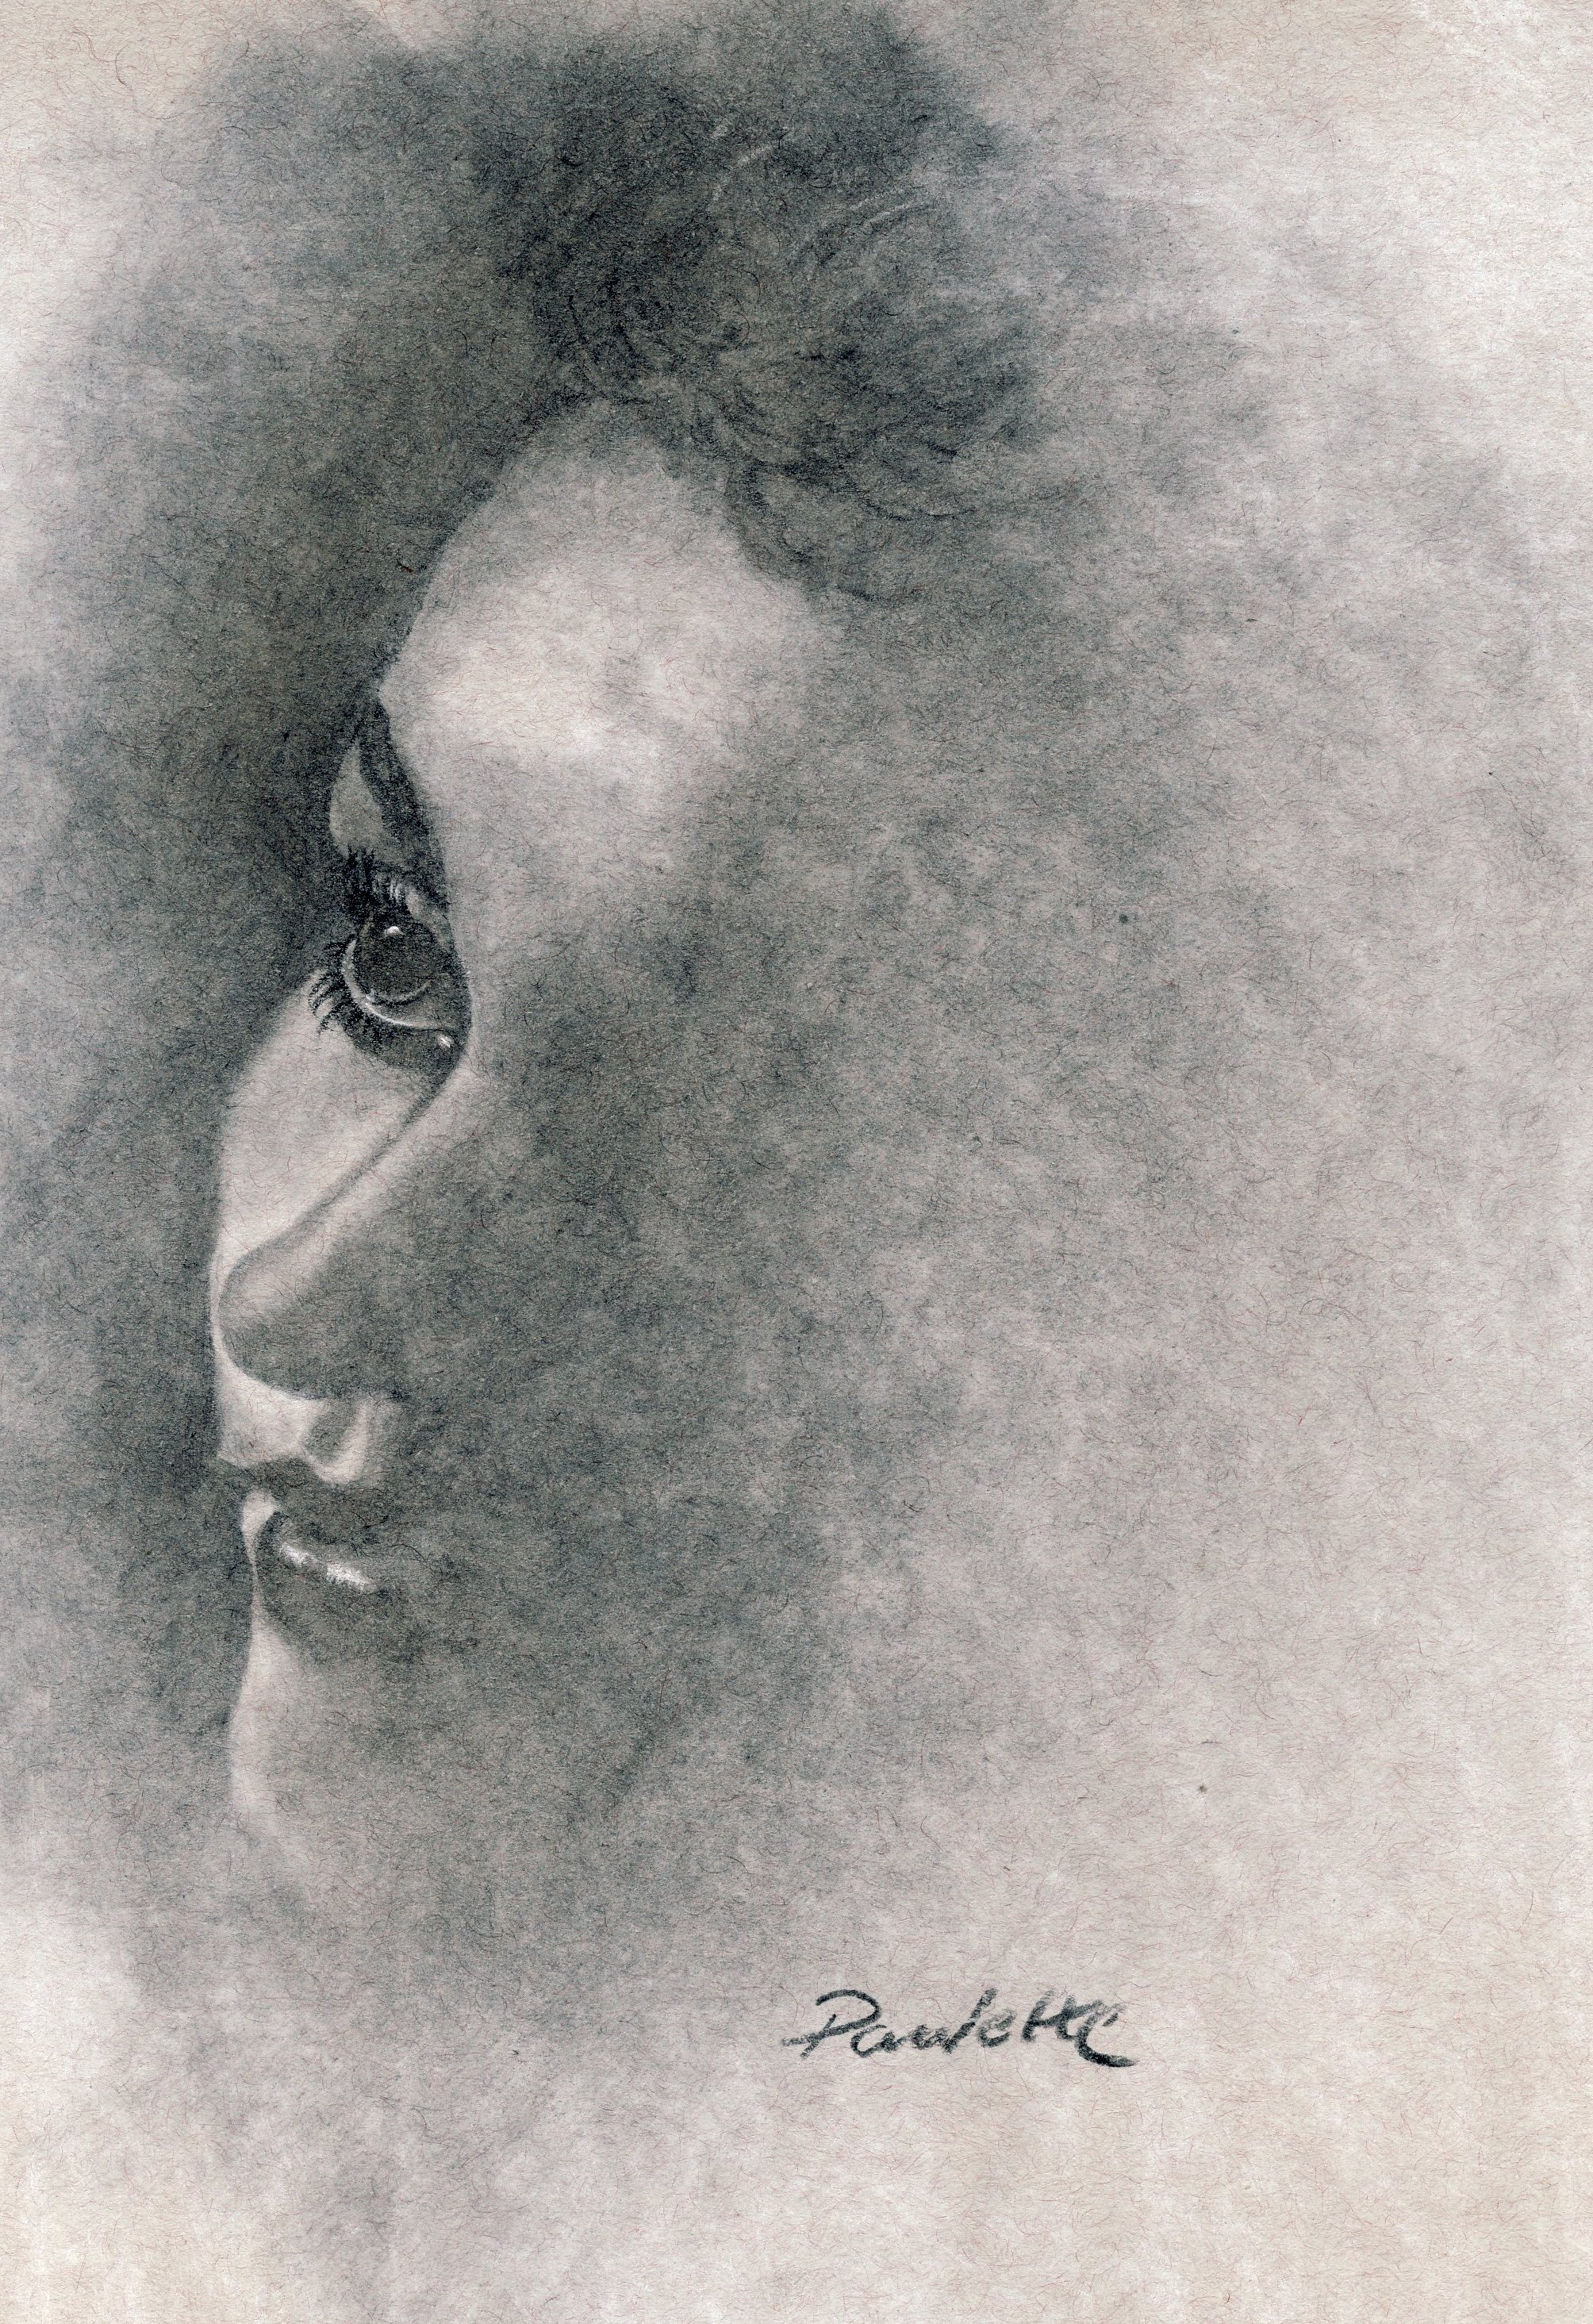 2008x2929 Portrait Drawing In Charcoal Of Woman In The Shadows Paulette